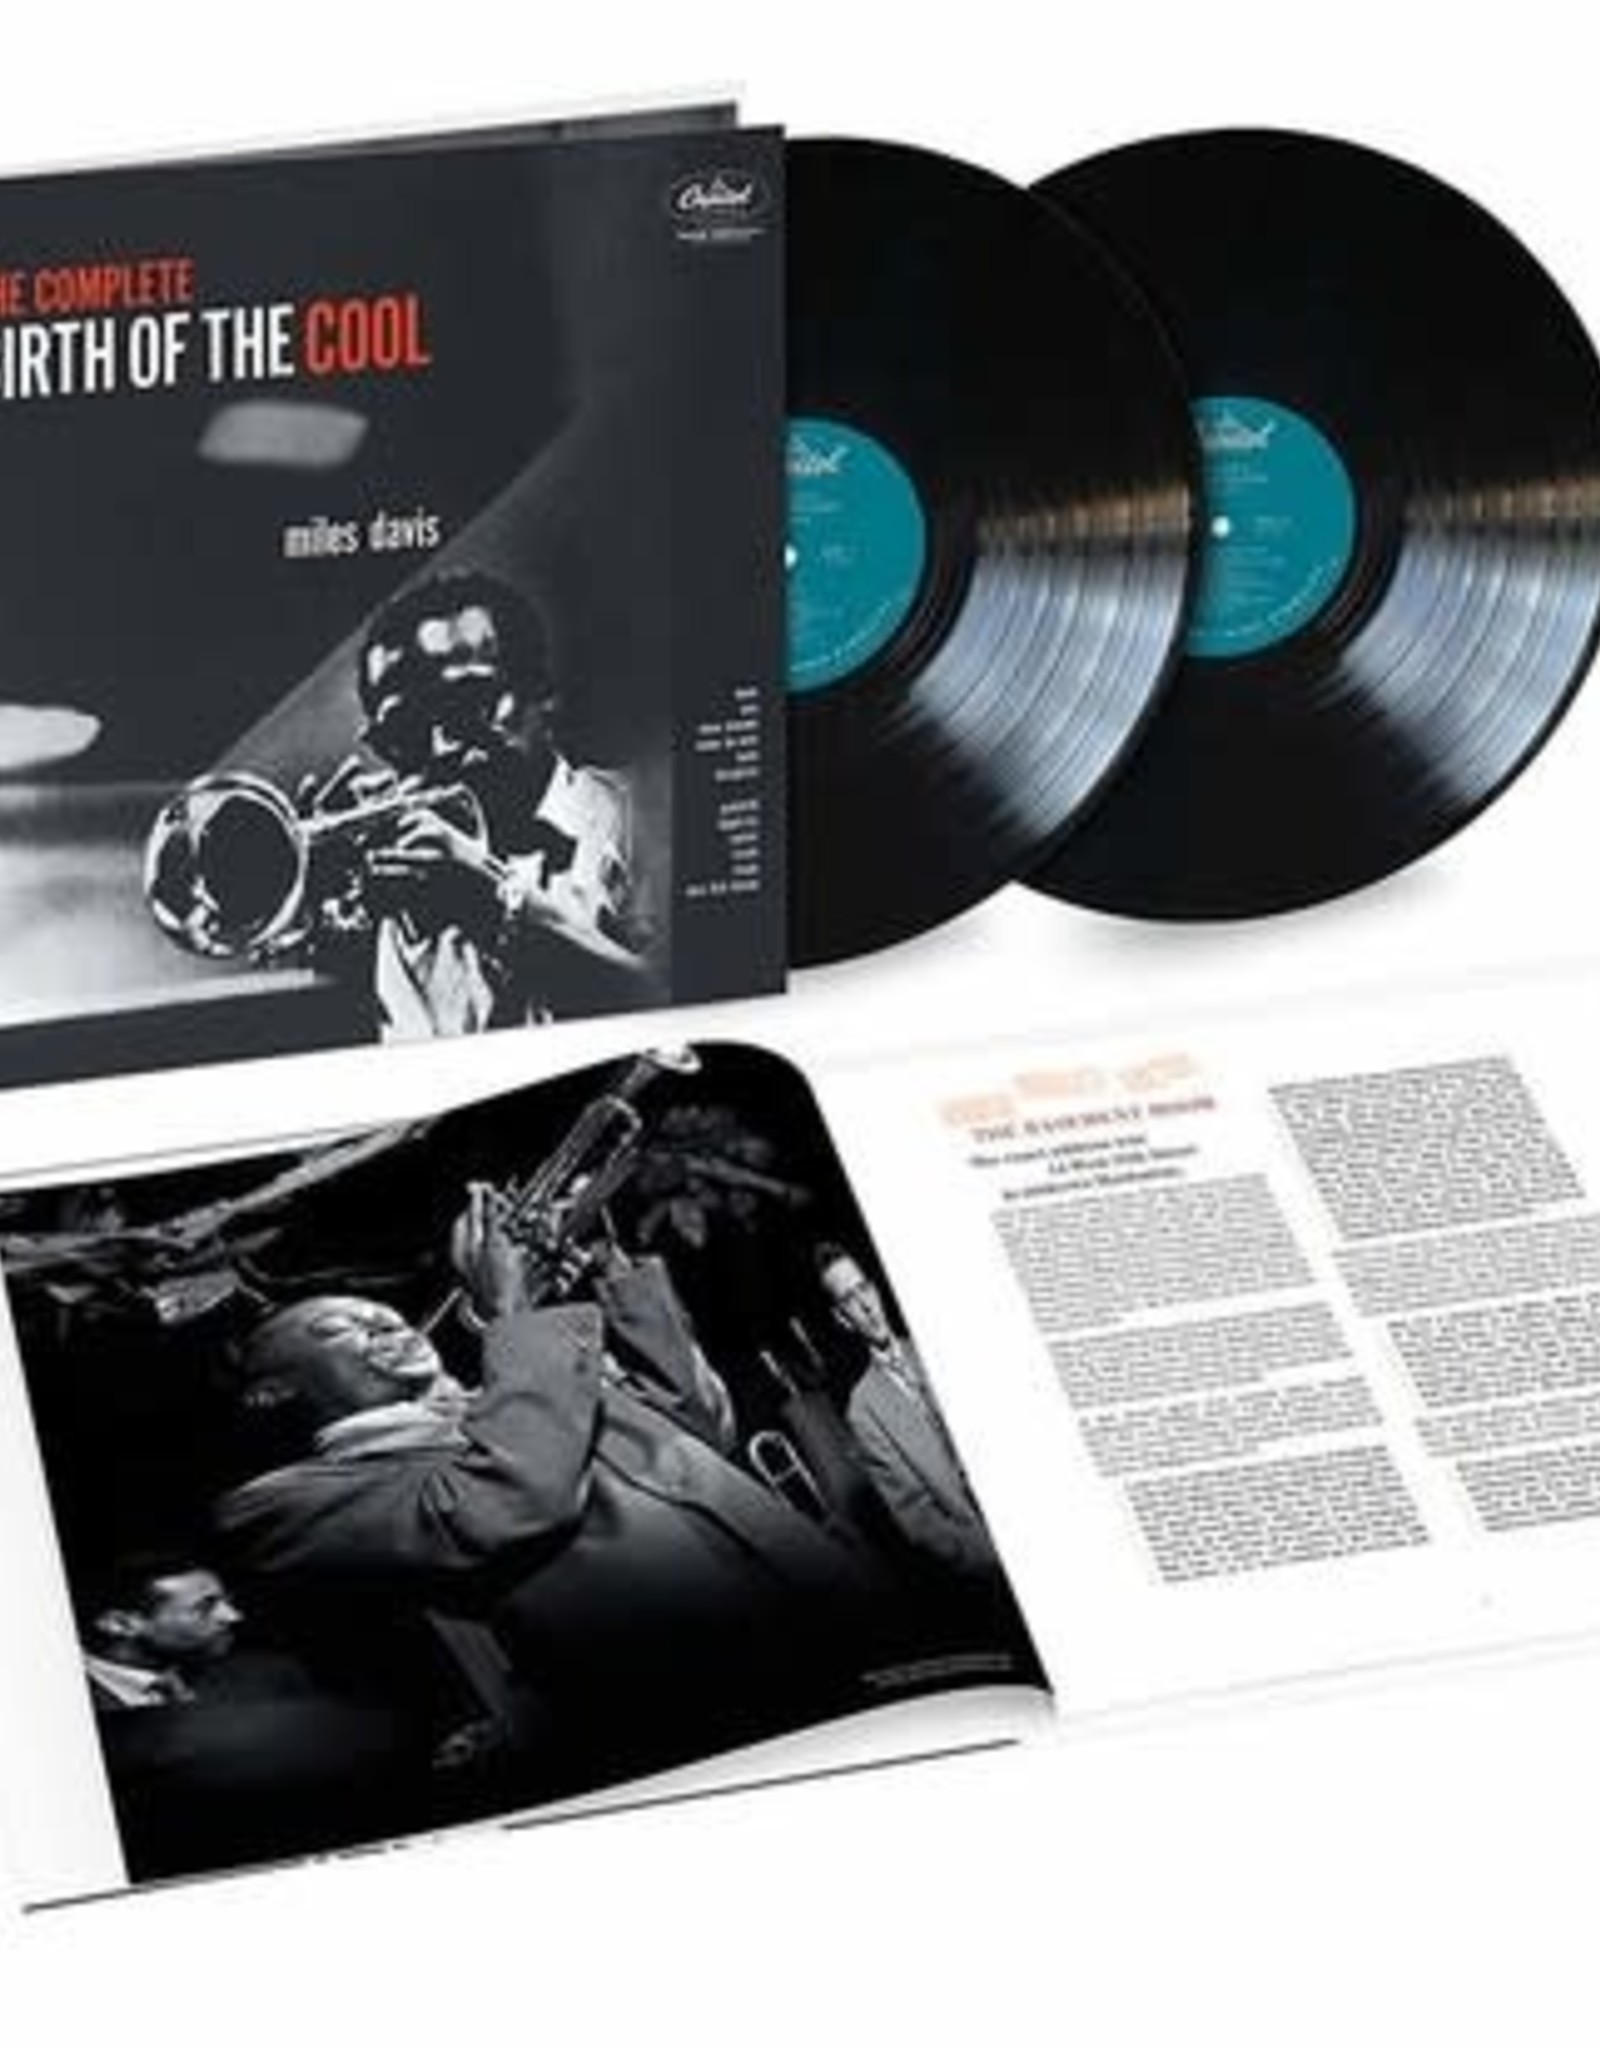 Miles Davis - The Complete Birth of the Cool